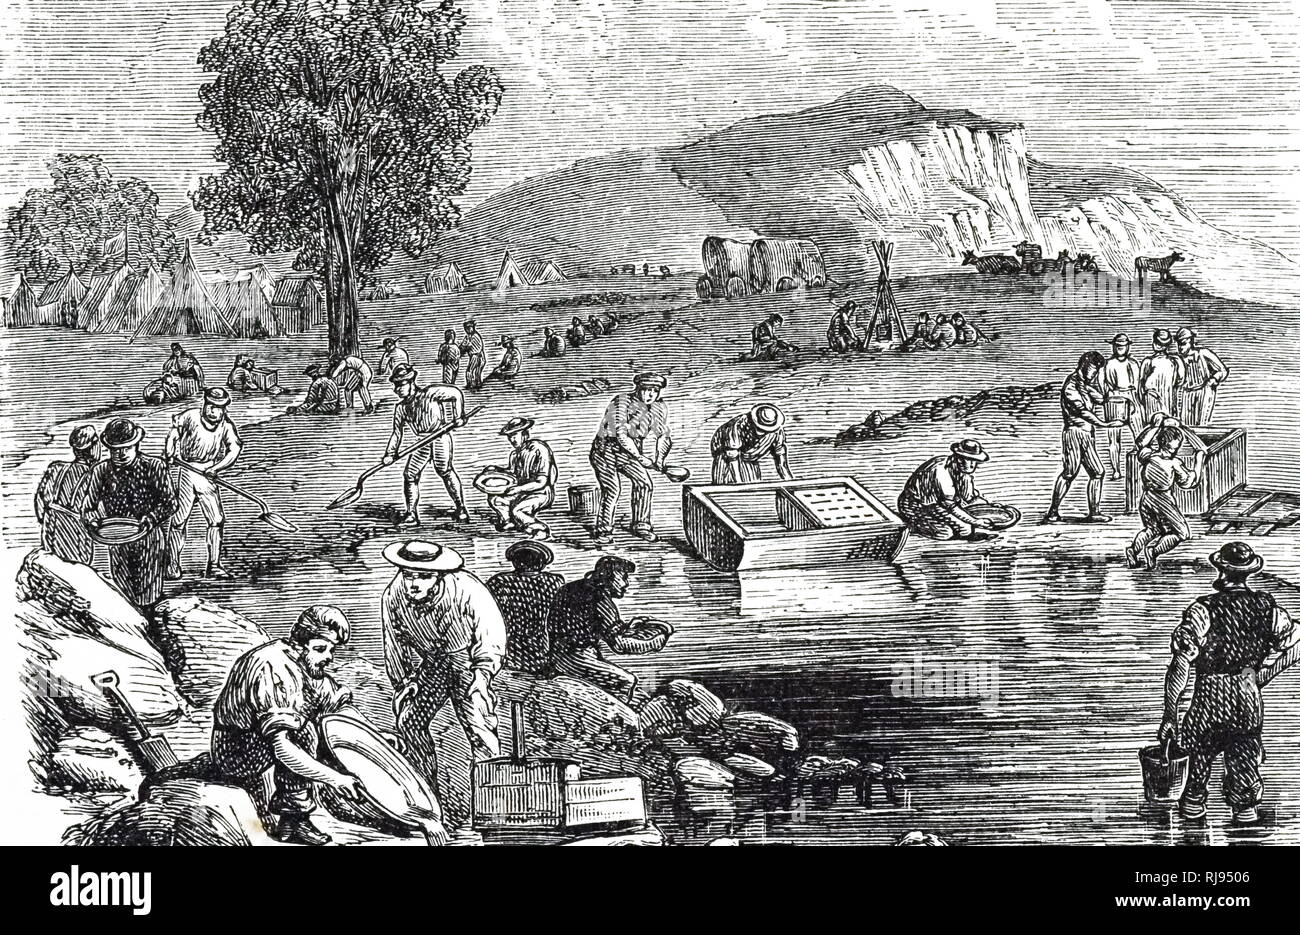 An engraving depicting men washing for gold during the New South Wales gold rush, Australia. Dated 19th century - Stock Image